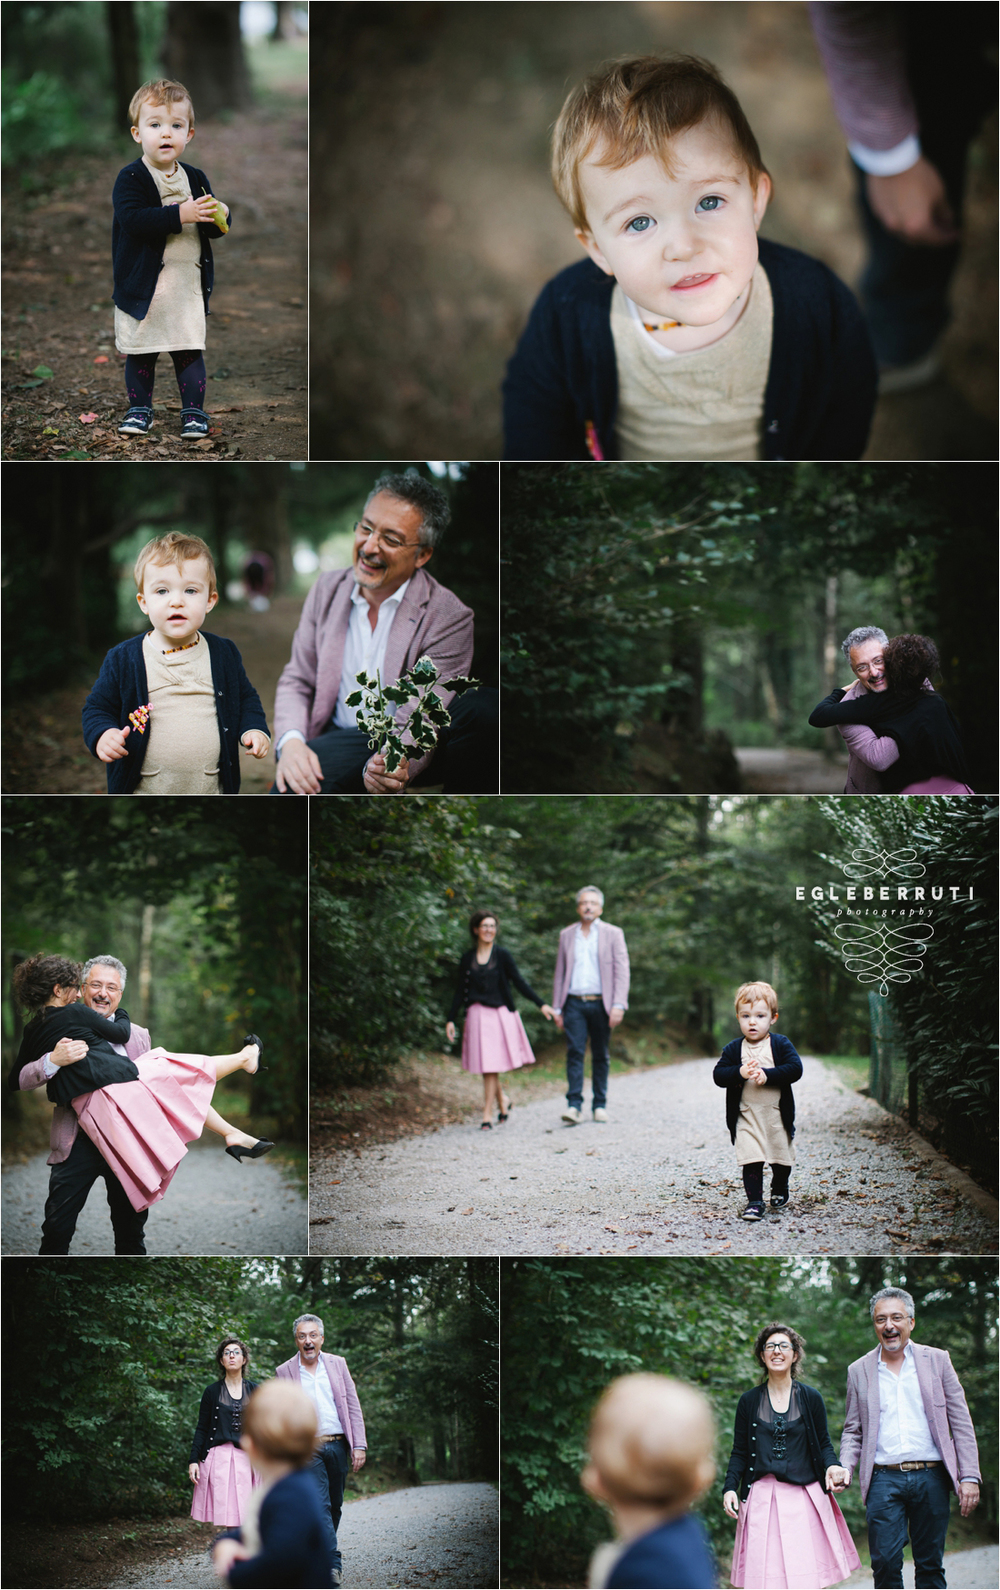 family photographer Lugano Egle Berruti